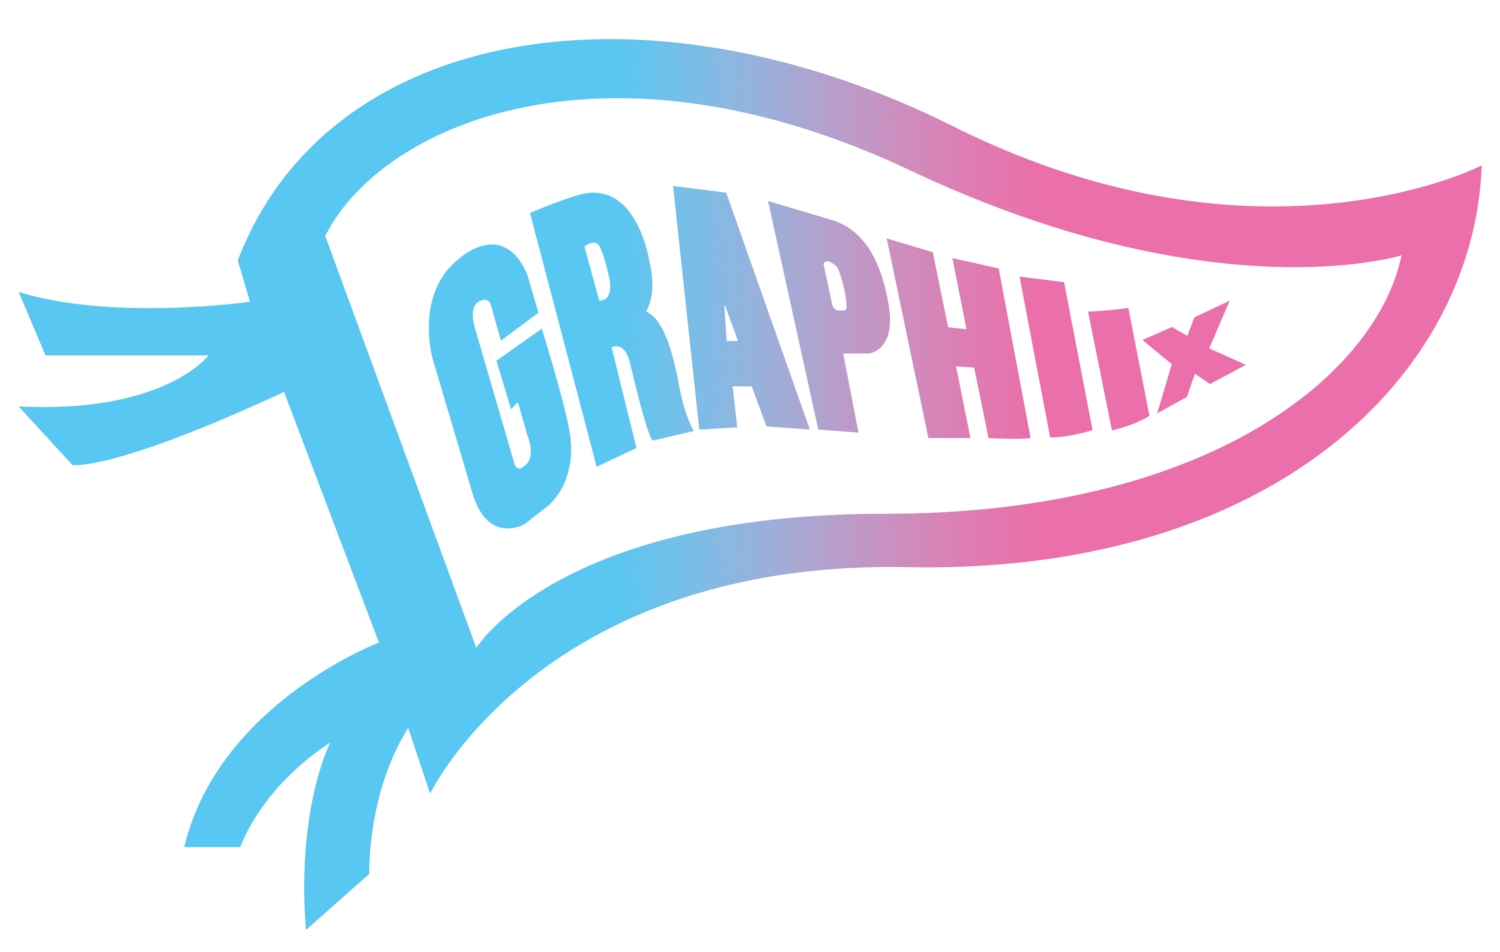 The Graphiix Project